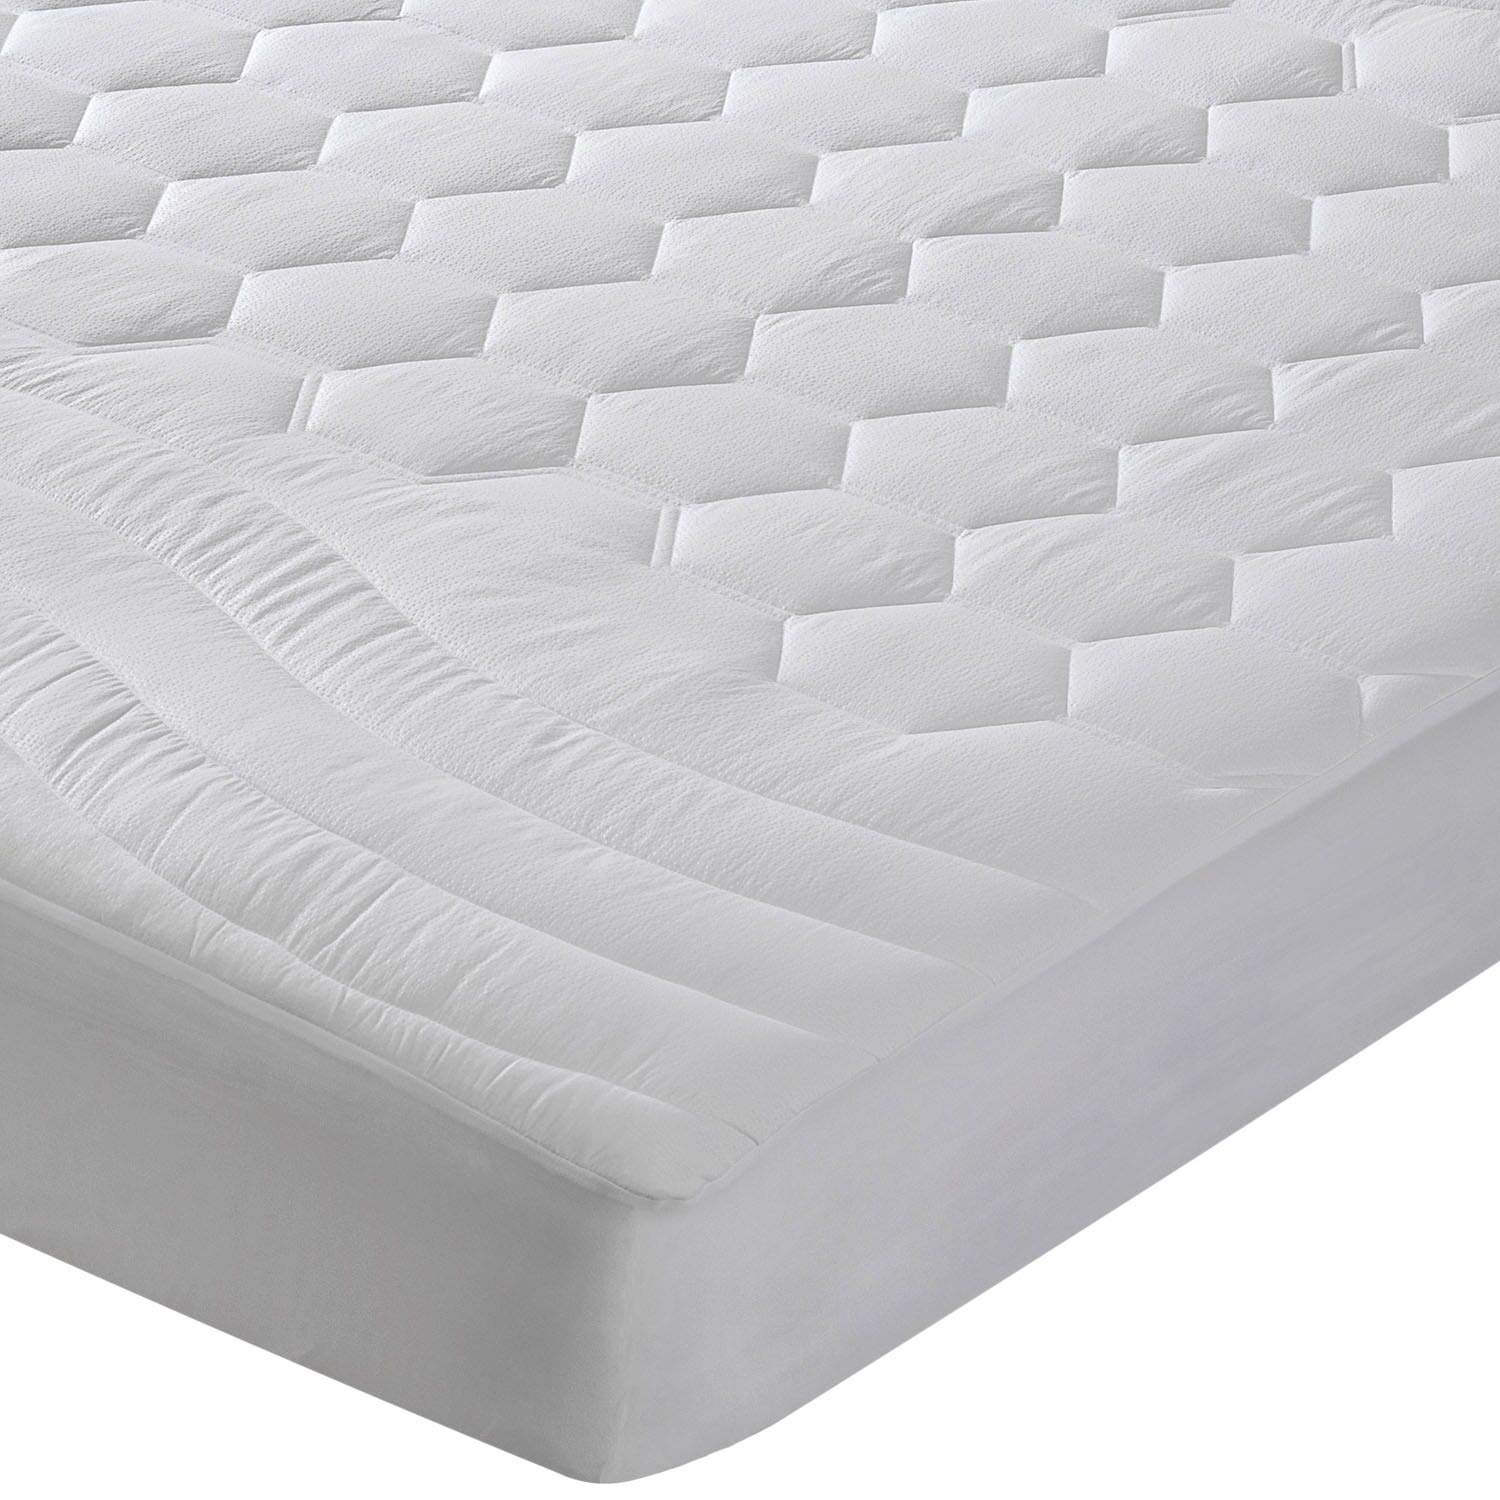 Bedsure Mattress Pad Twin Size Hypoallergenic - Antibacterial, Breathable - Ultra Soft Quilted Mattress Protector, Fitted Sheet Mattress Cover White